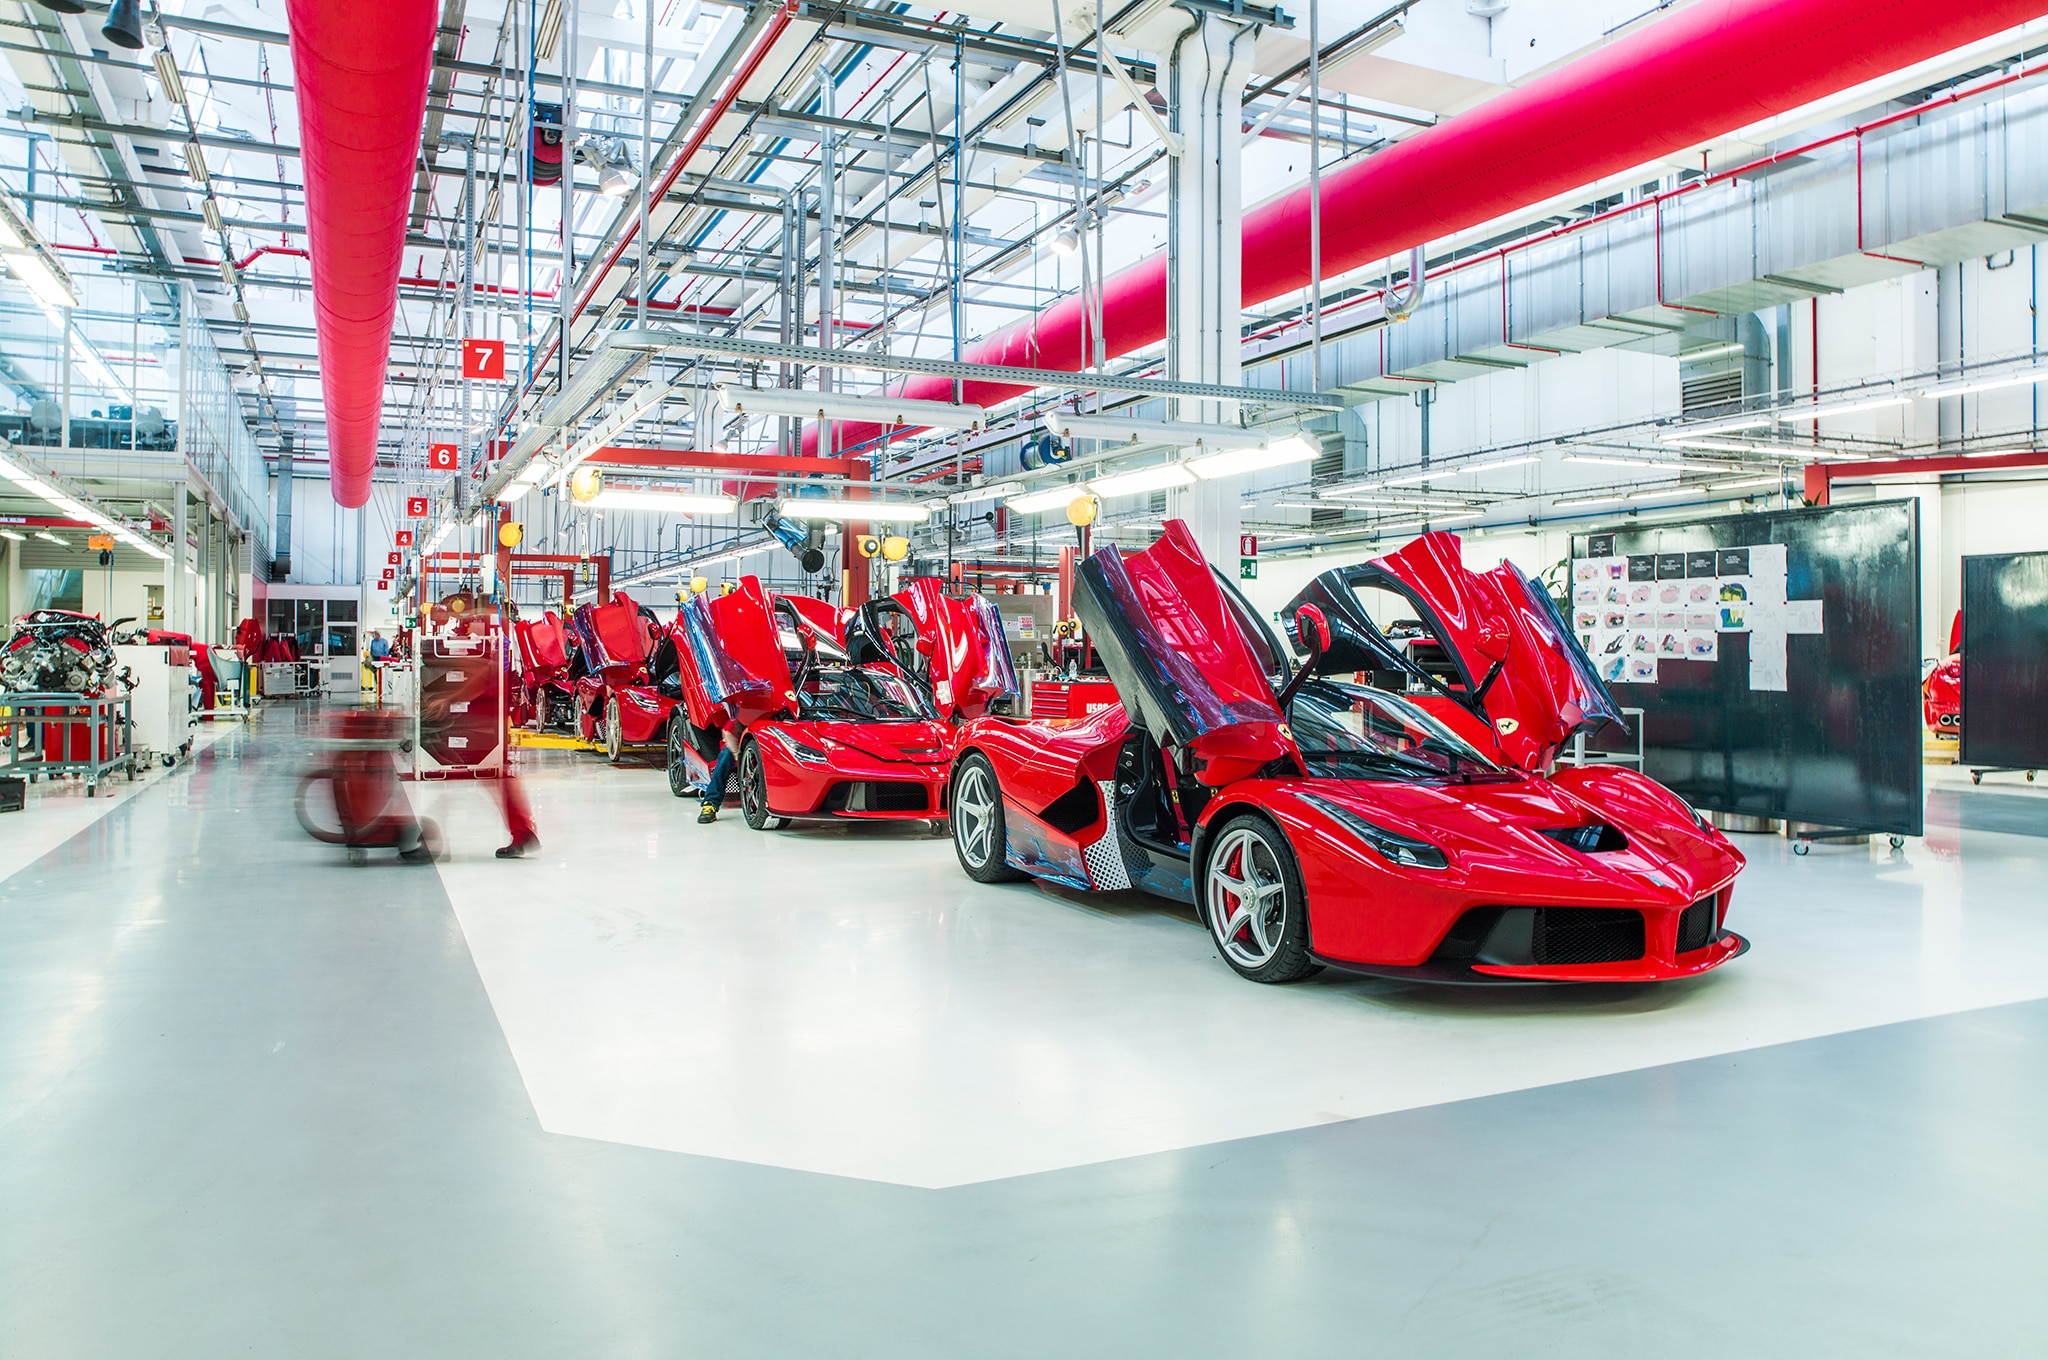 Ferrari Laferrari Finished Cars Wide